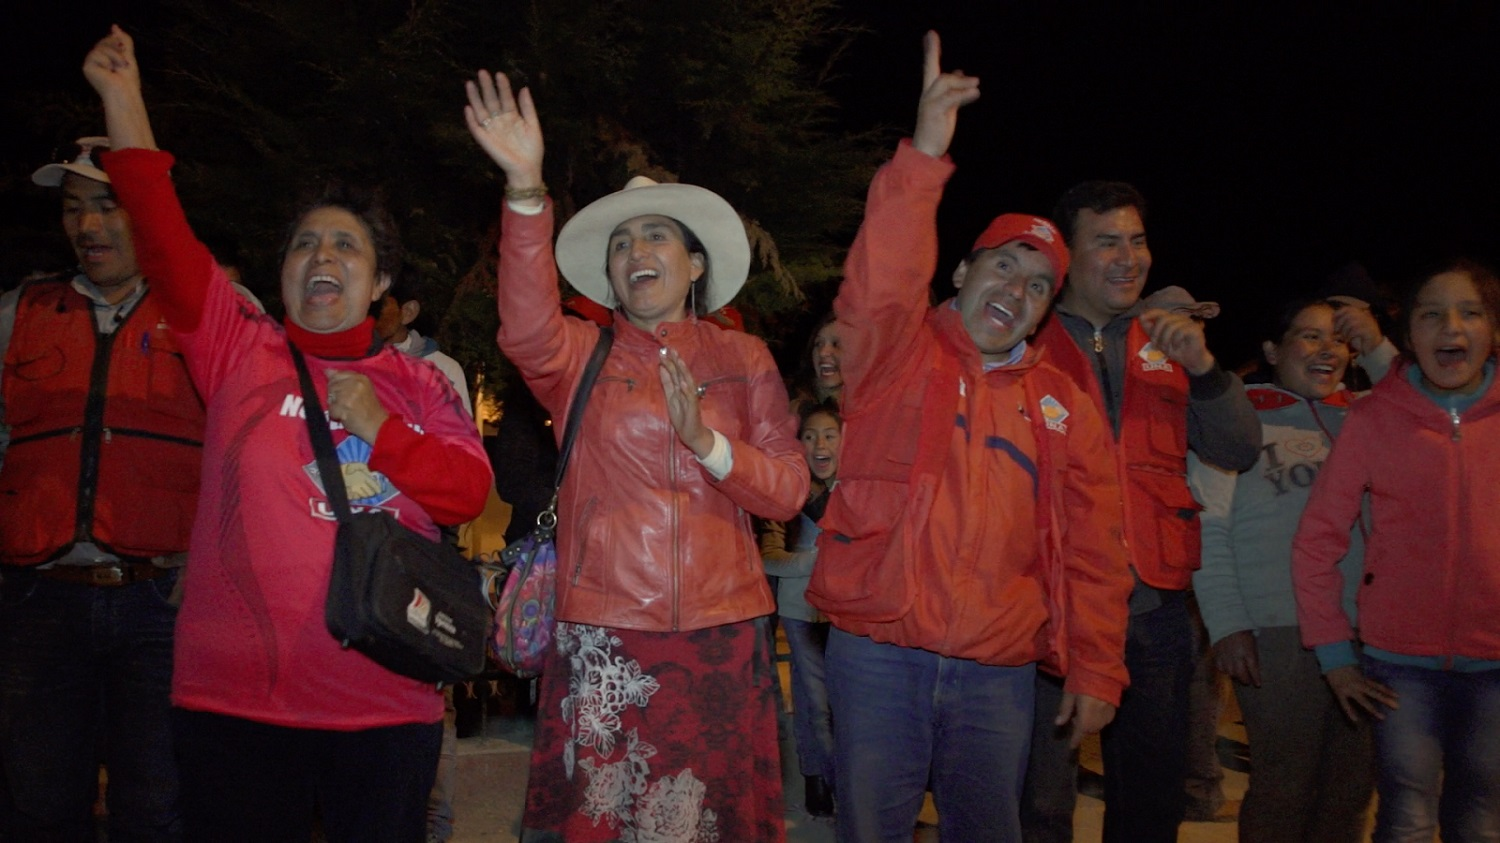 TRAILER: This Doc Follows Nelida Silva's Campaign to Become First Female Mayor of a Peruvian Town